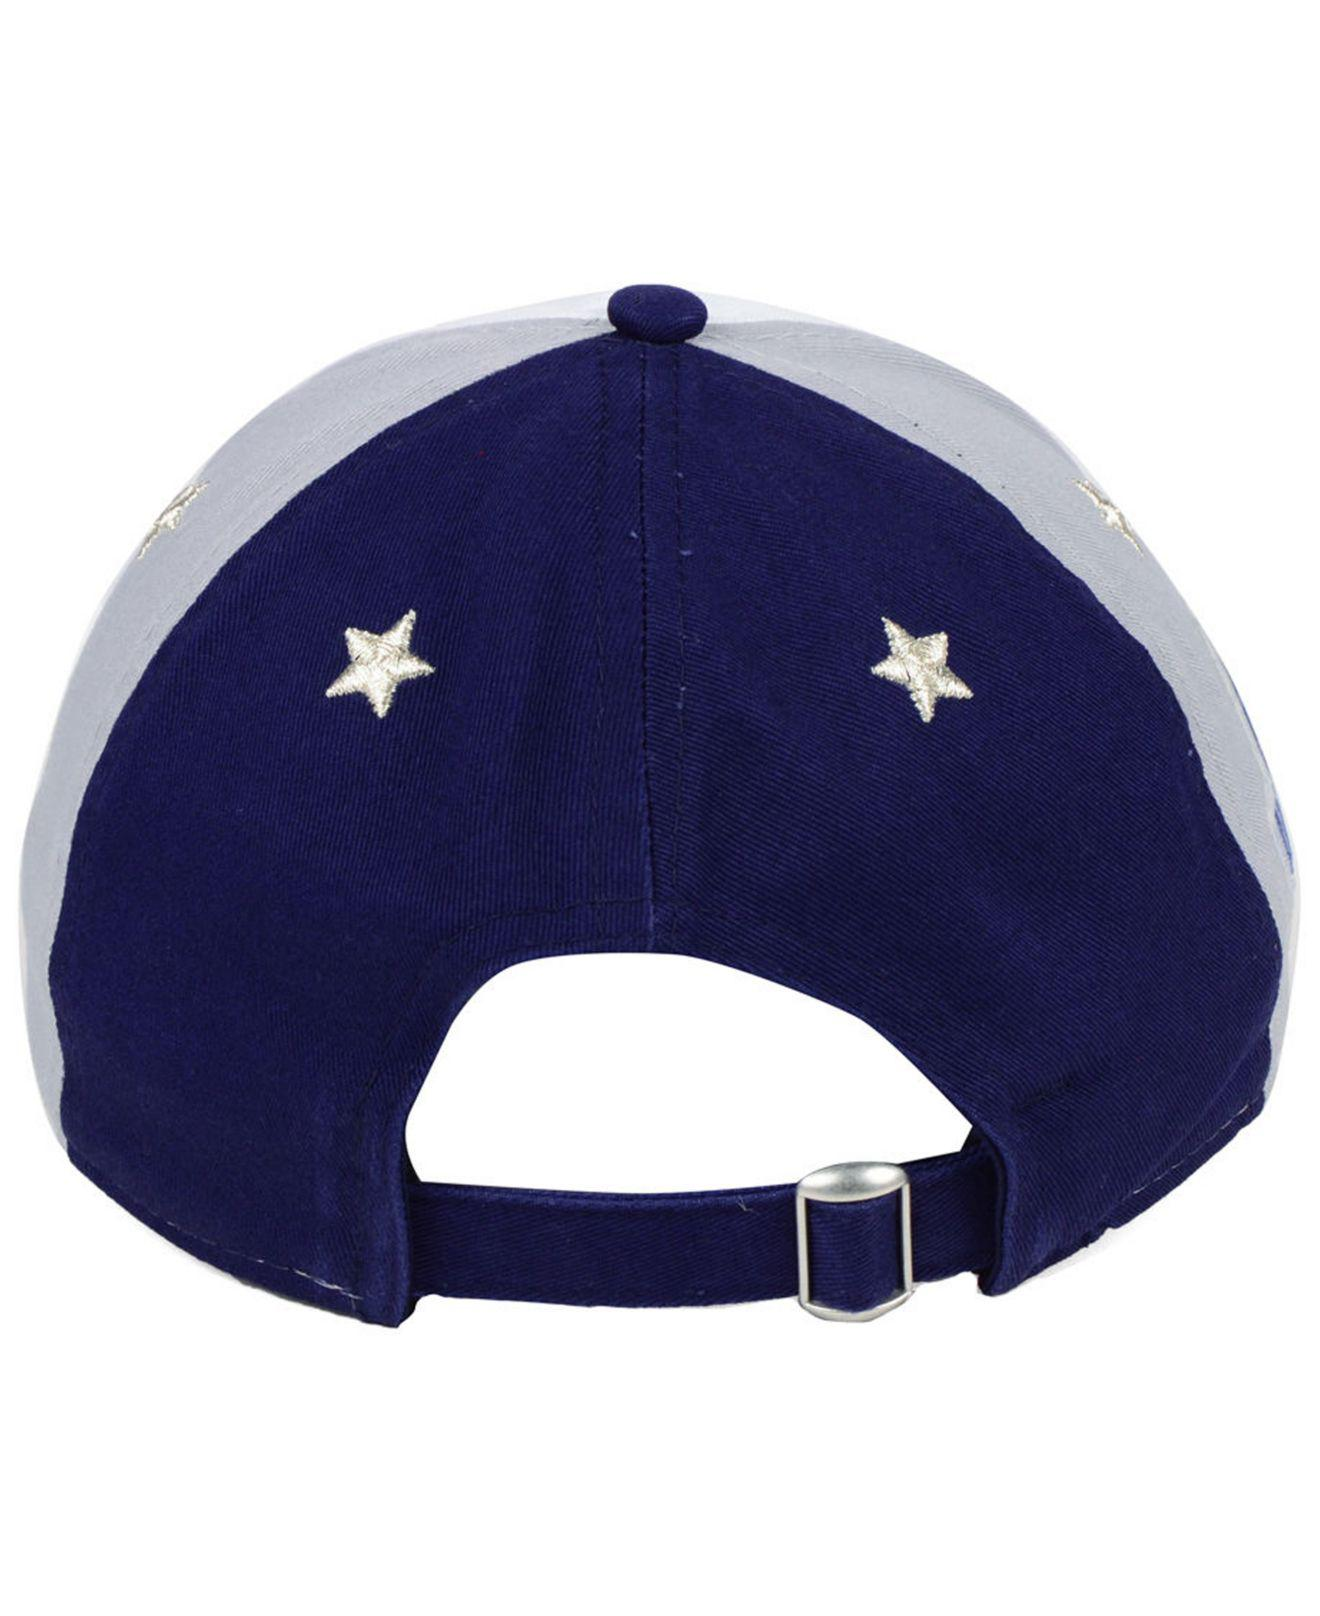 new arrival cf91e c18e8 ... official store san diego padres all star game 9twenty strapback cap  2018 for men . view